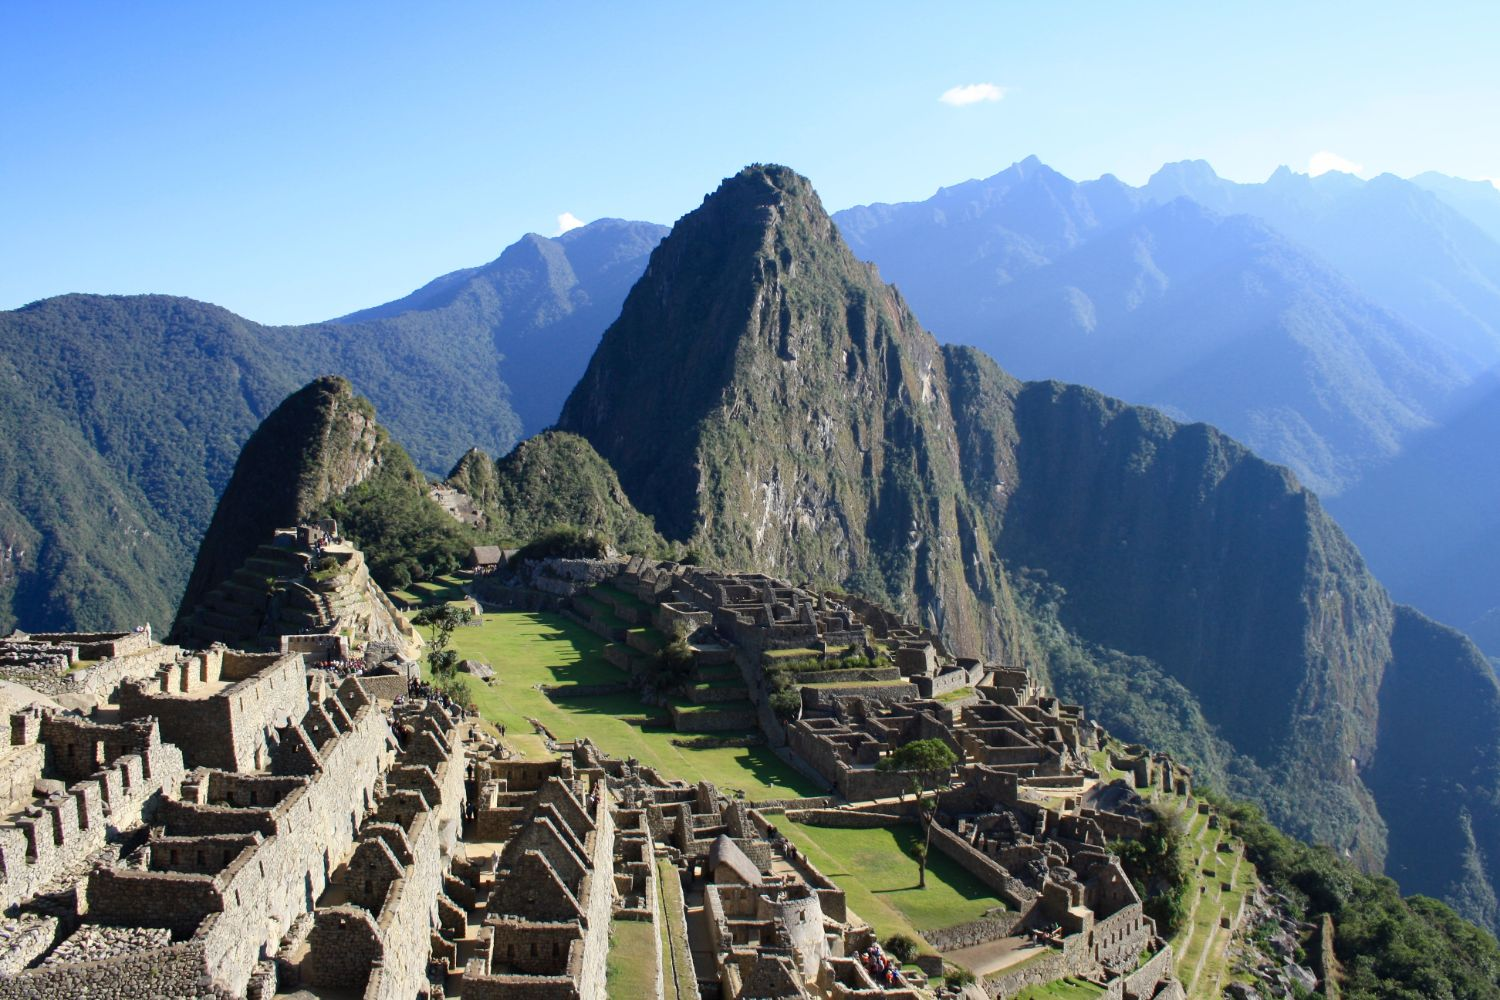 What can leaders learn from the incas?